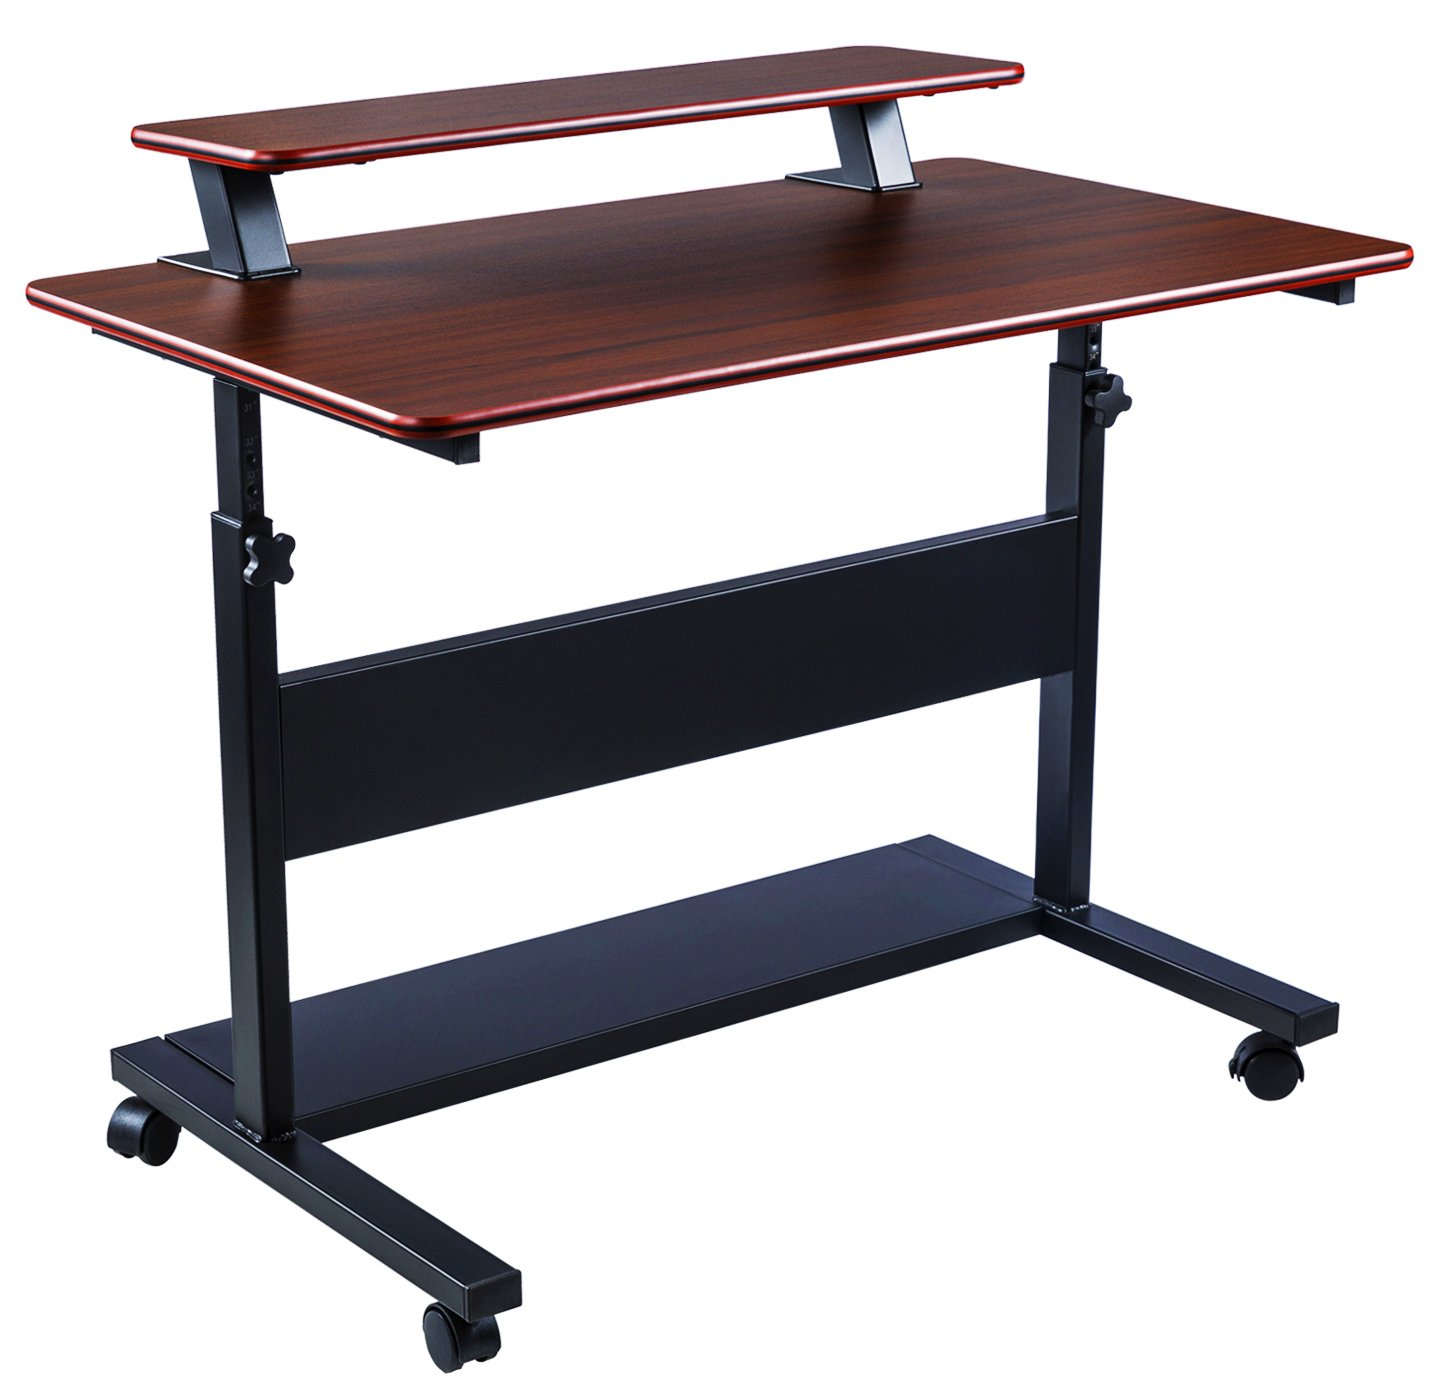 40'' Height Adjustable Mobile Stand Up Desk, 2-Tier Standing Computer Workstation with Detachable Hutch, Teak